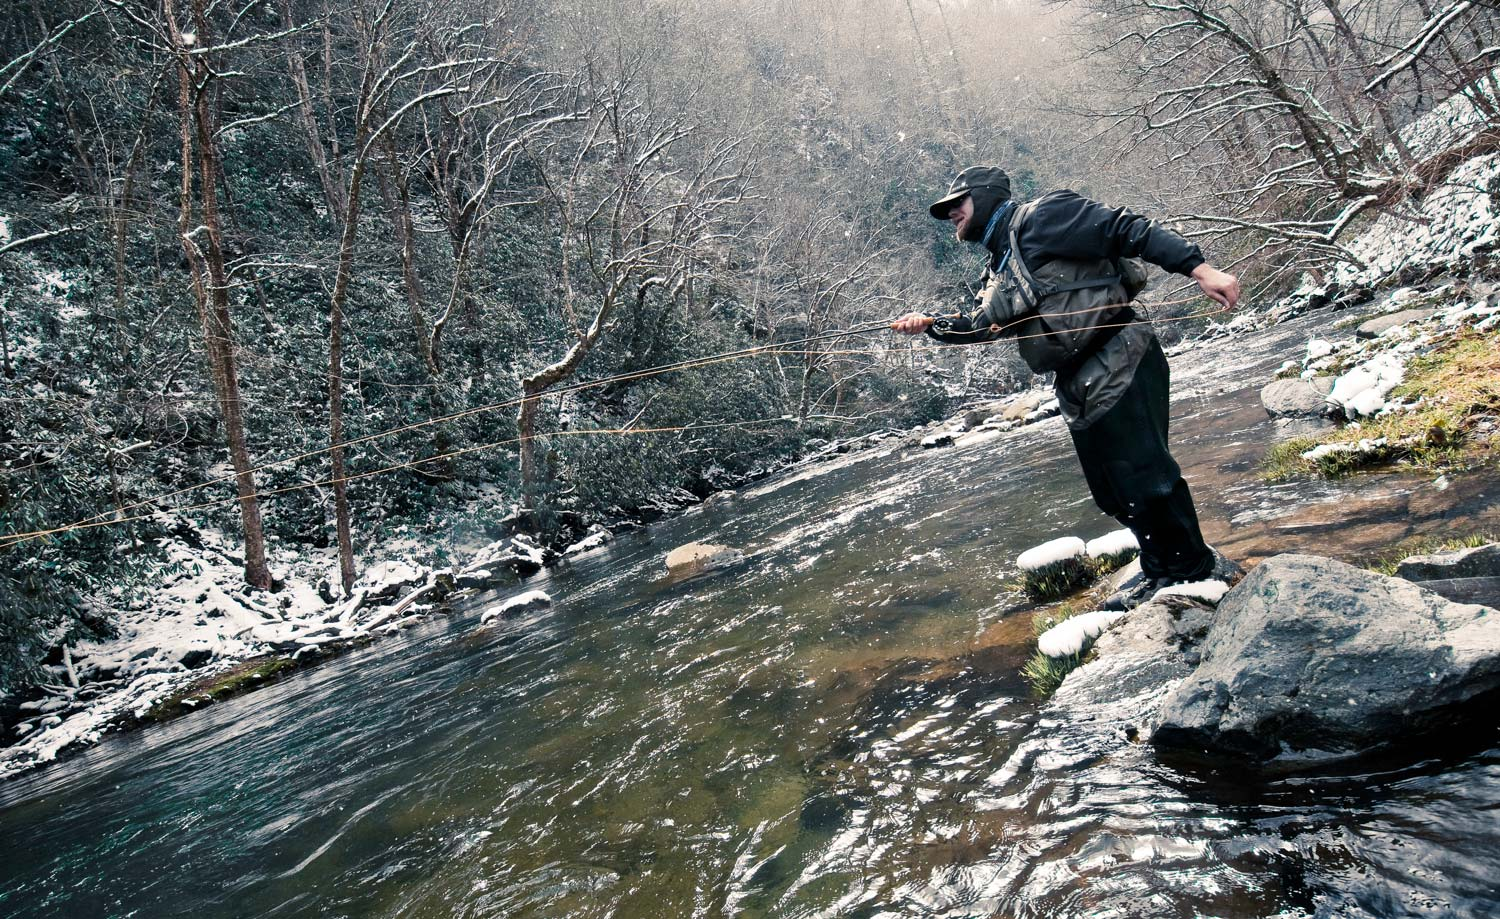 Snow Wallpaper Iphone 5 Redington Subzero Waders Review Fly Fishing Gink And